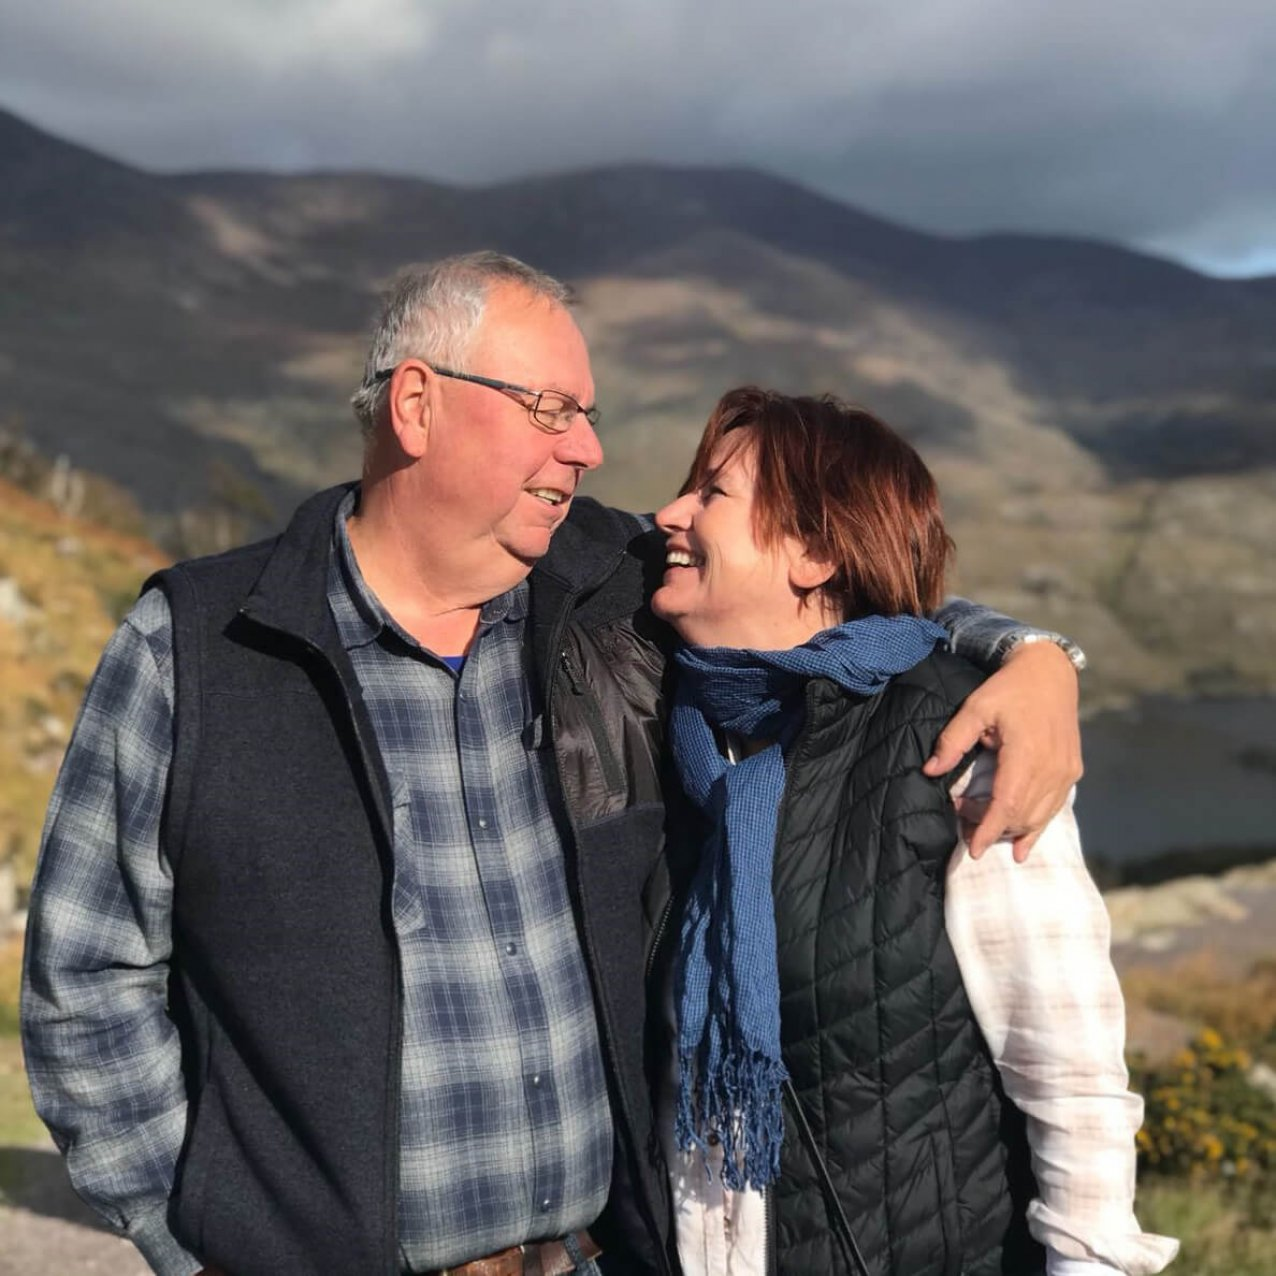 Couple stare lovingly into each others eyes at scenic location in Ireland